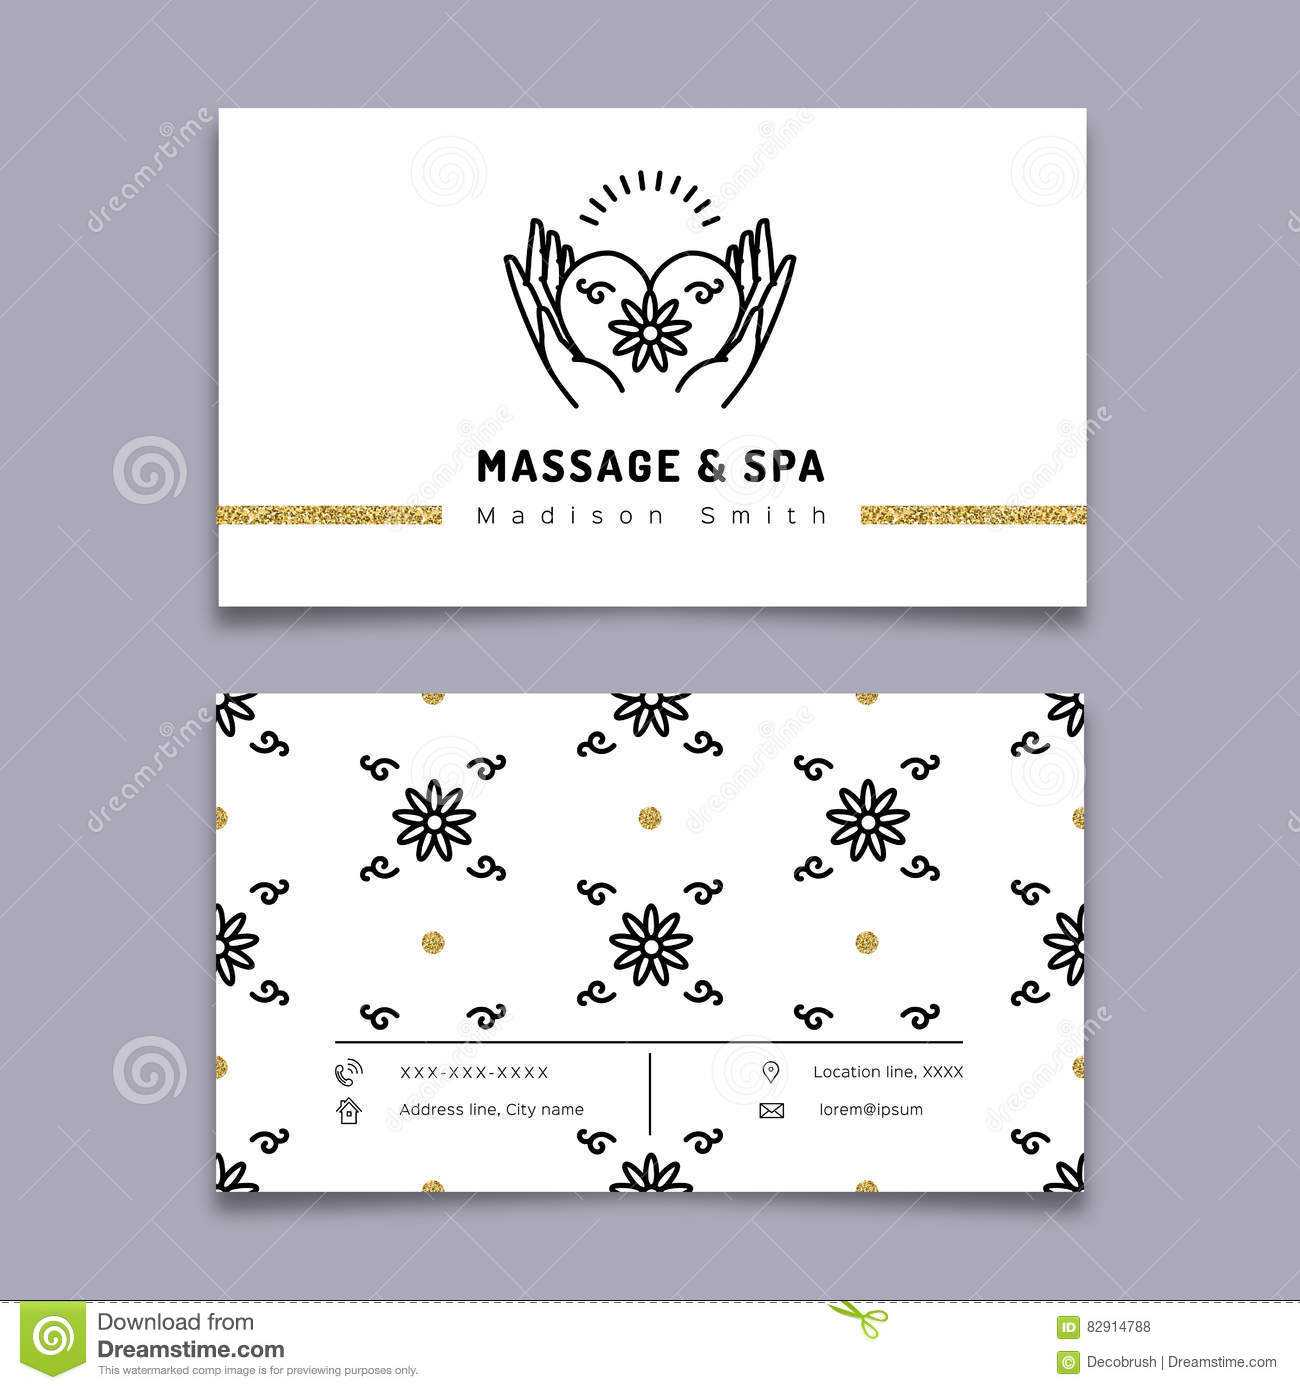 Massage And Spa Therapy Business Card Template, Trendy Line Regarding Massage Therapy Business Card Templates